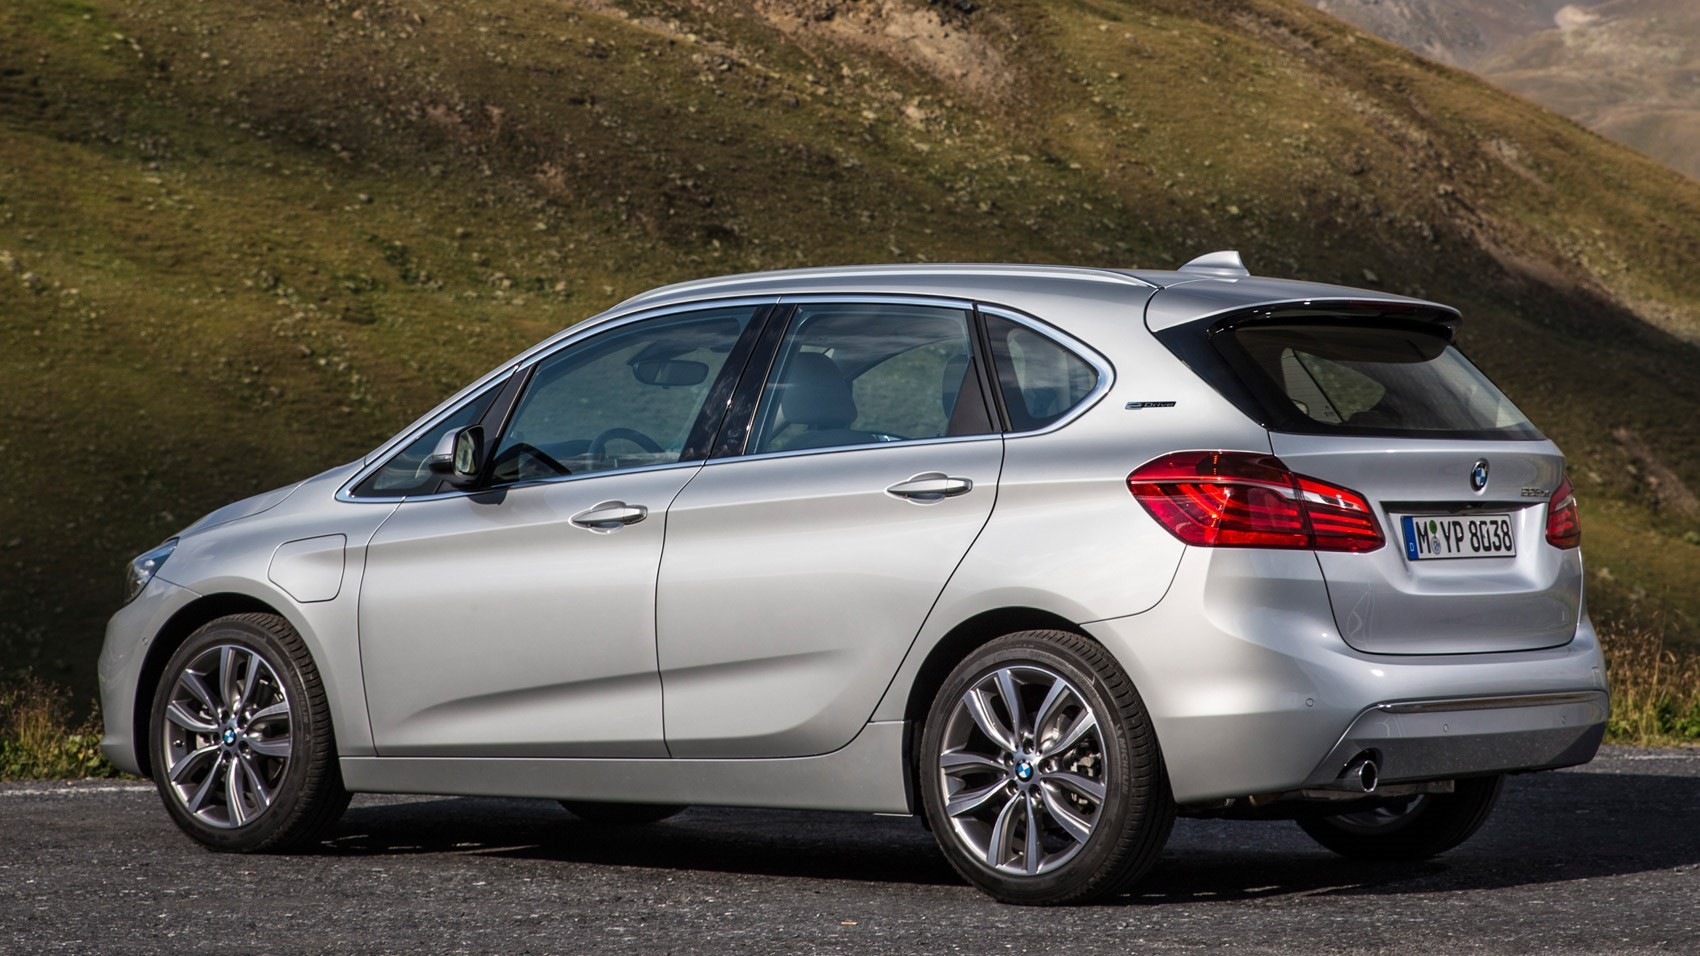 bmw 2 series active tourer 225xe 2016 review car magazine. Black Bedroom Furniture Sets. Home Design Ideas